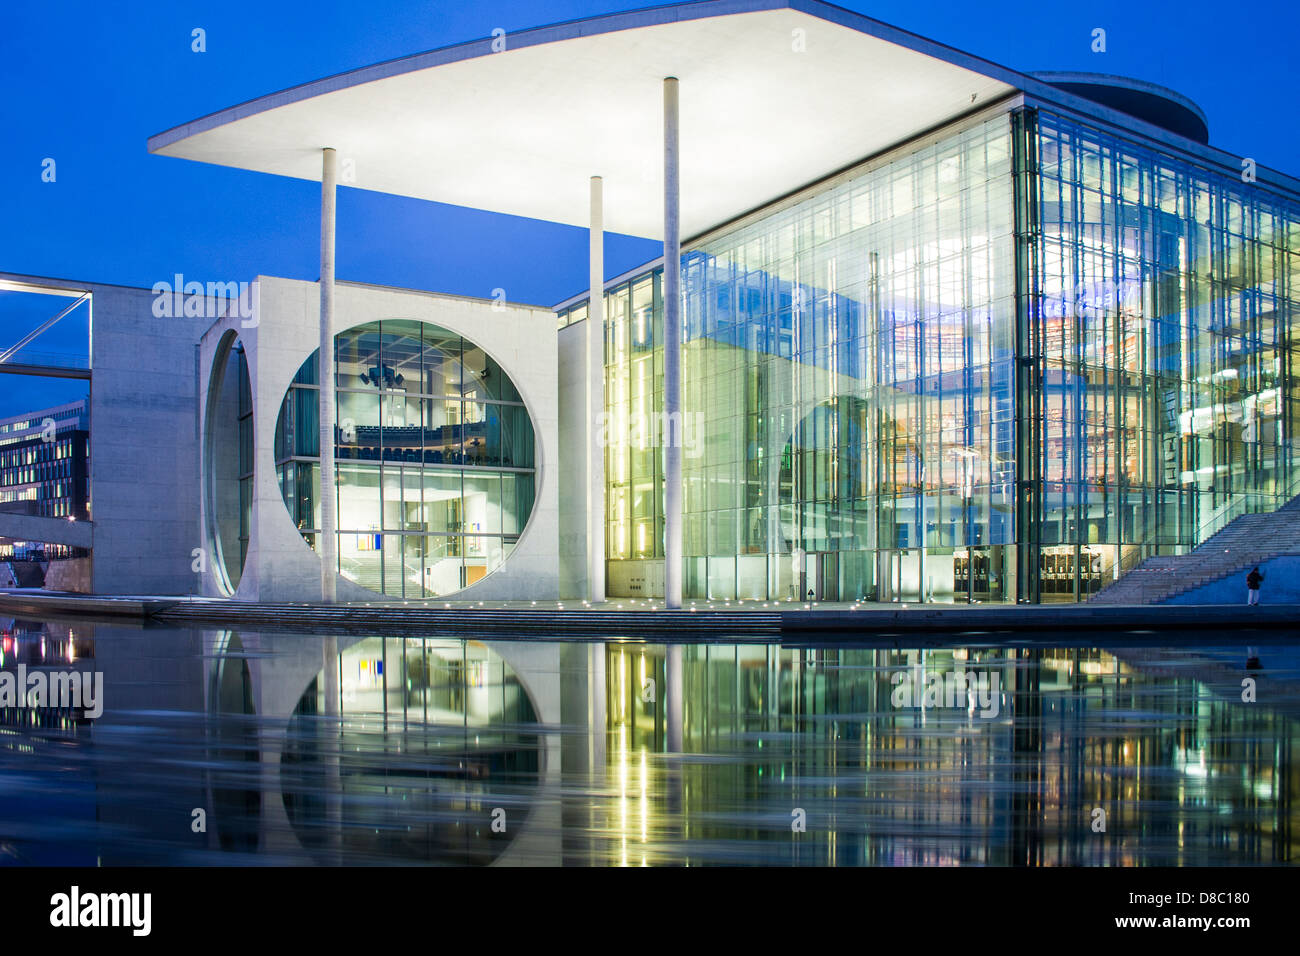 Marie Elisabeth Lüders Haus and Spree River at evening. - Stock Image